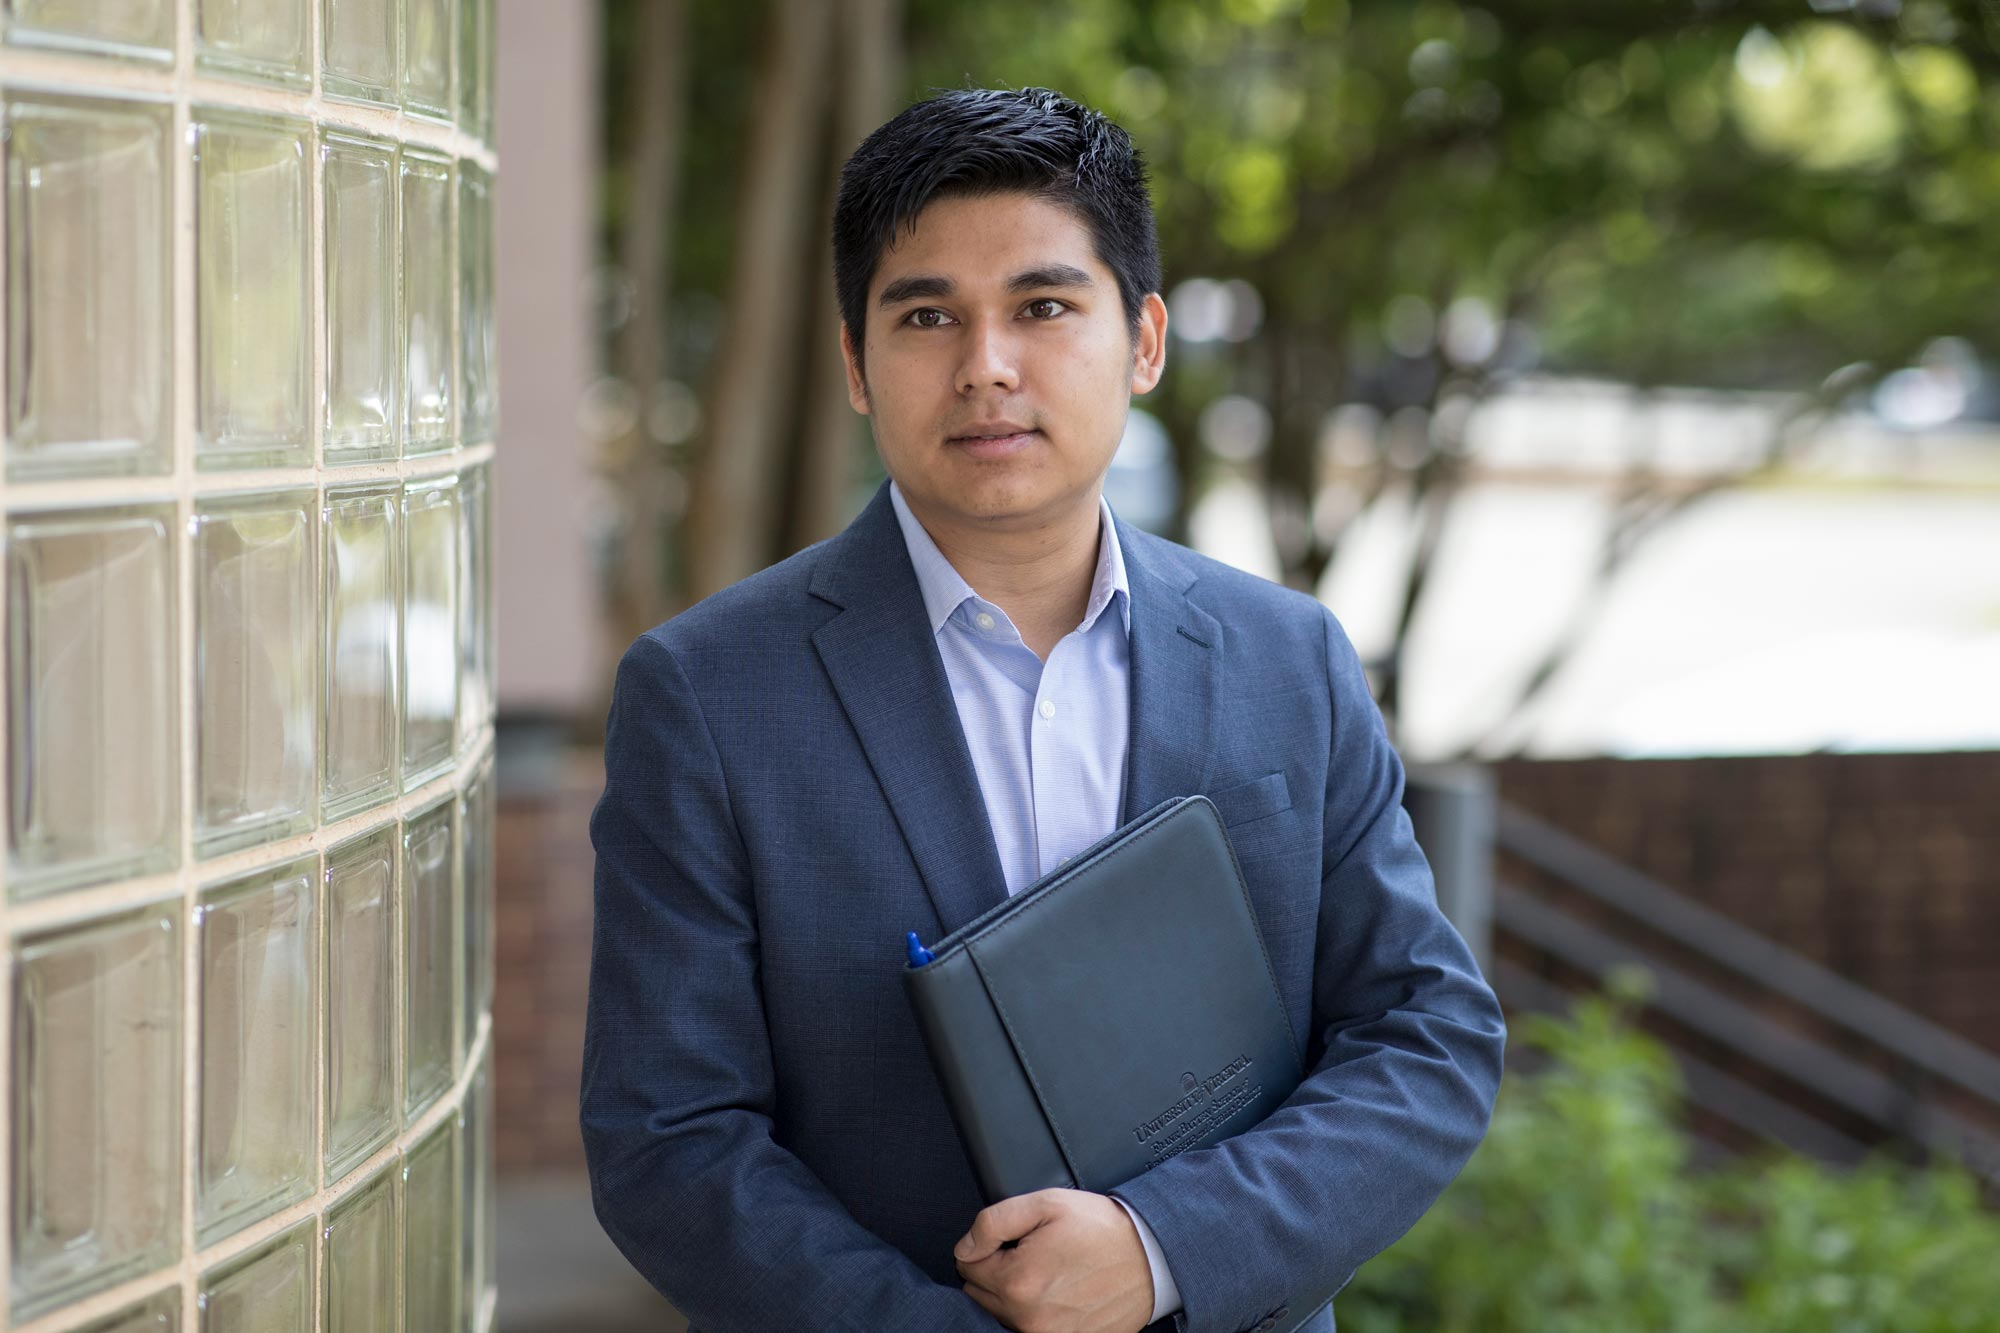 The Cooper Center's Kyaw Khine predicts jobs in Virginia's tourism and hospitality industry will continue to grow over the next six years. (Photo by Dan Addison, University Communications)